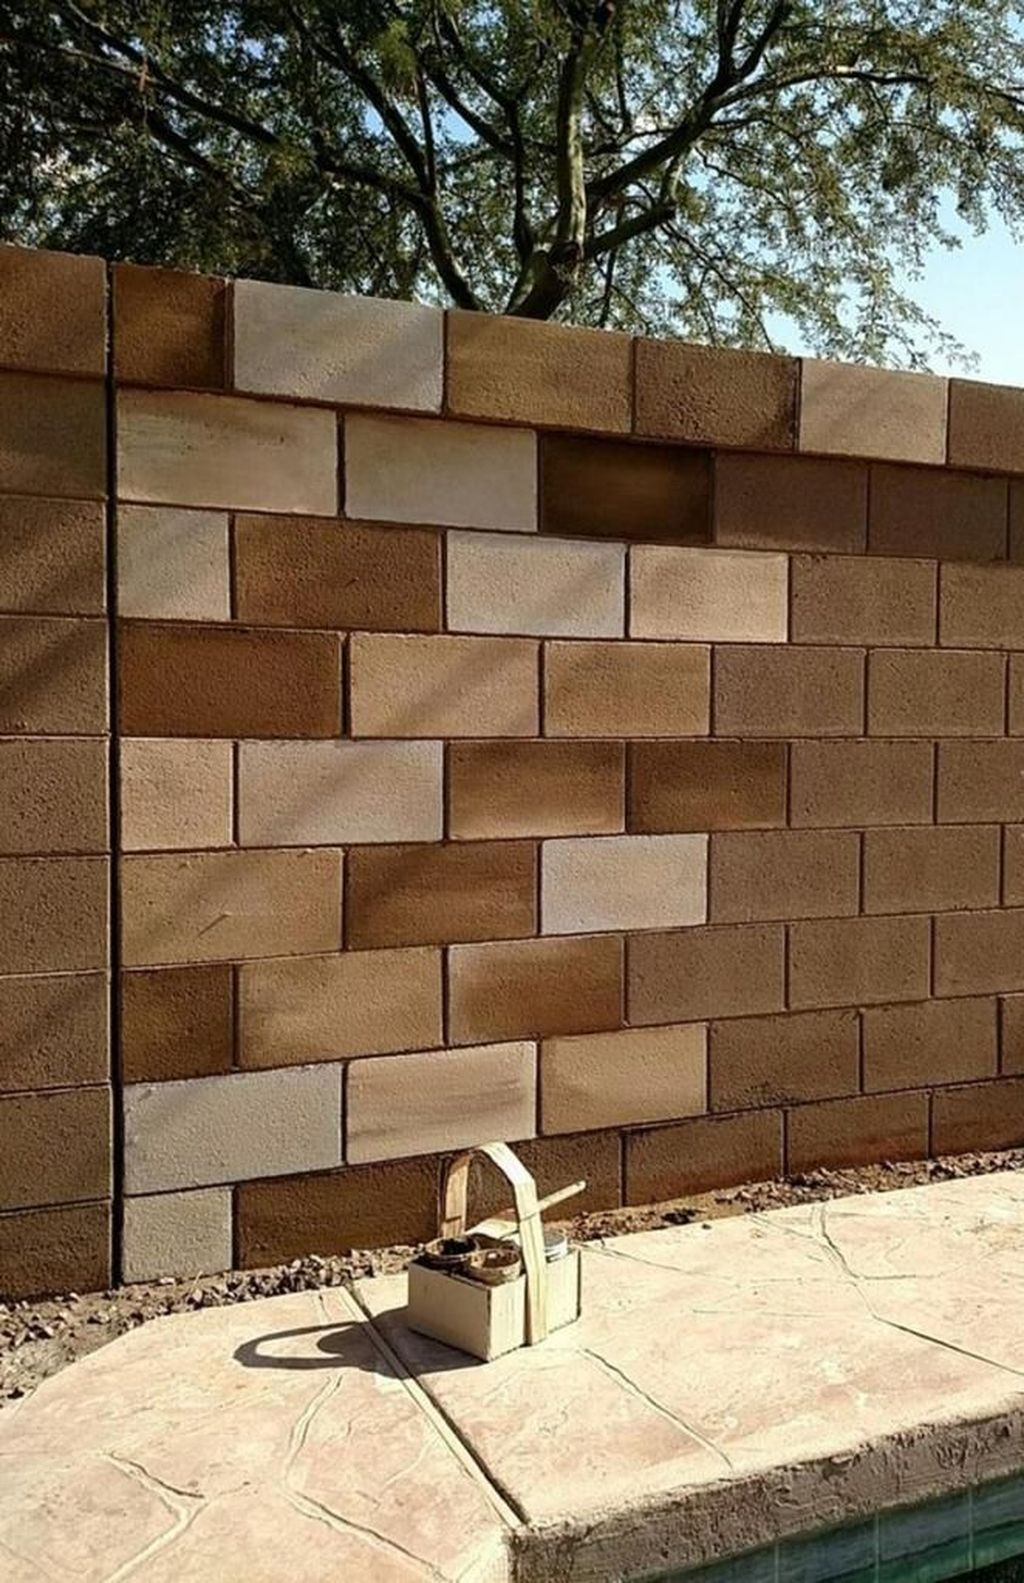 33 Glamorous Wall Outdoor Concrete Design Ideas That Will Inspire You Decorating Cinder Block Walls Cinder Block Garden Wall Cinder Block Walls